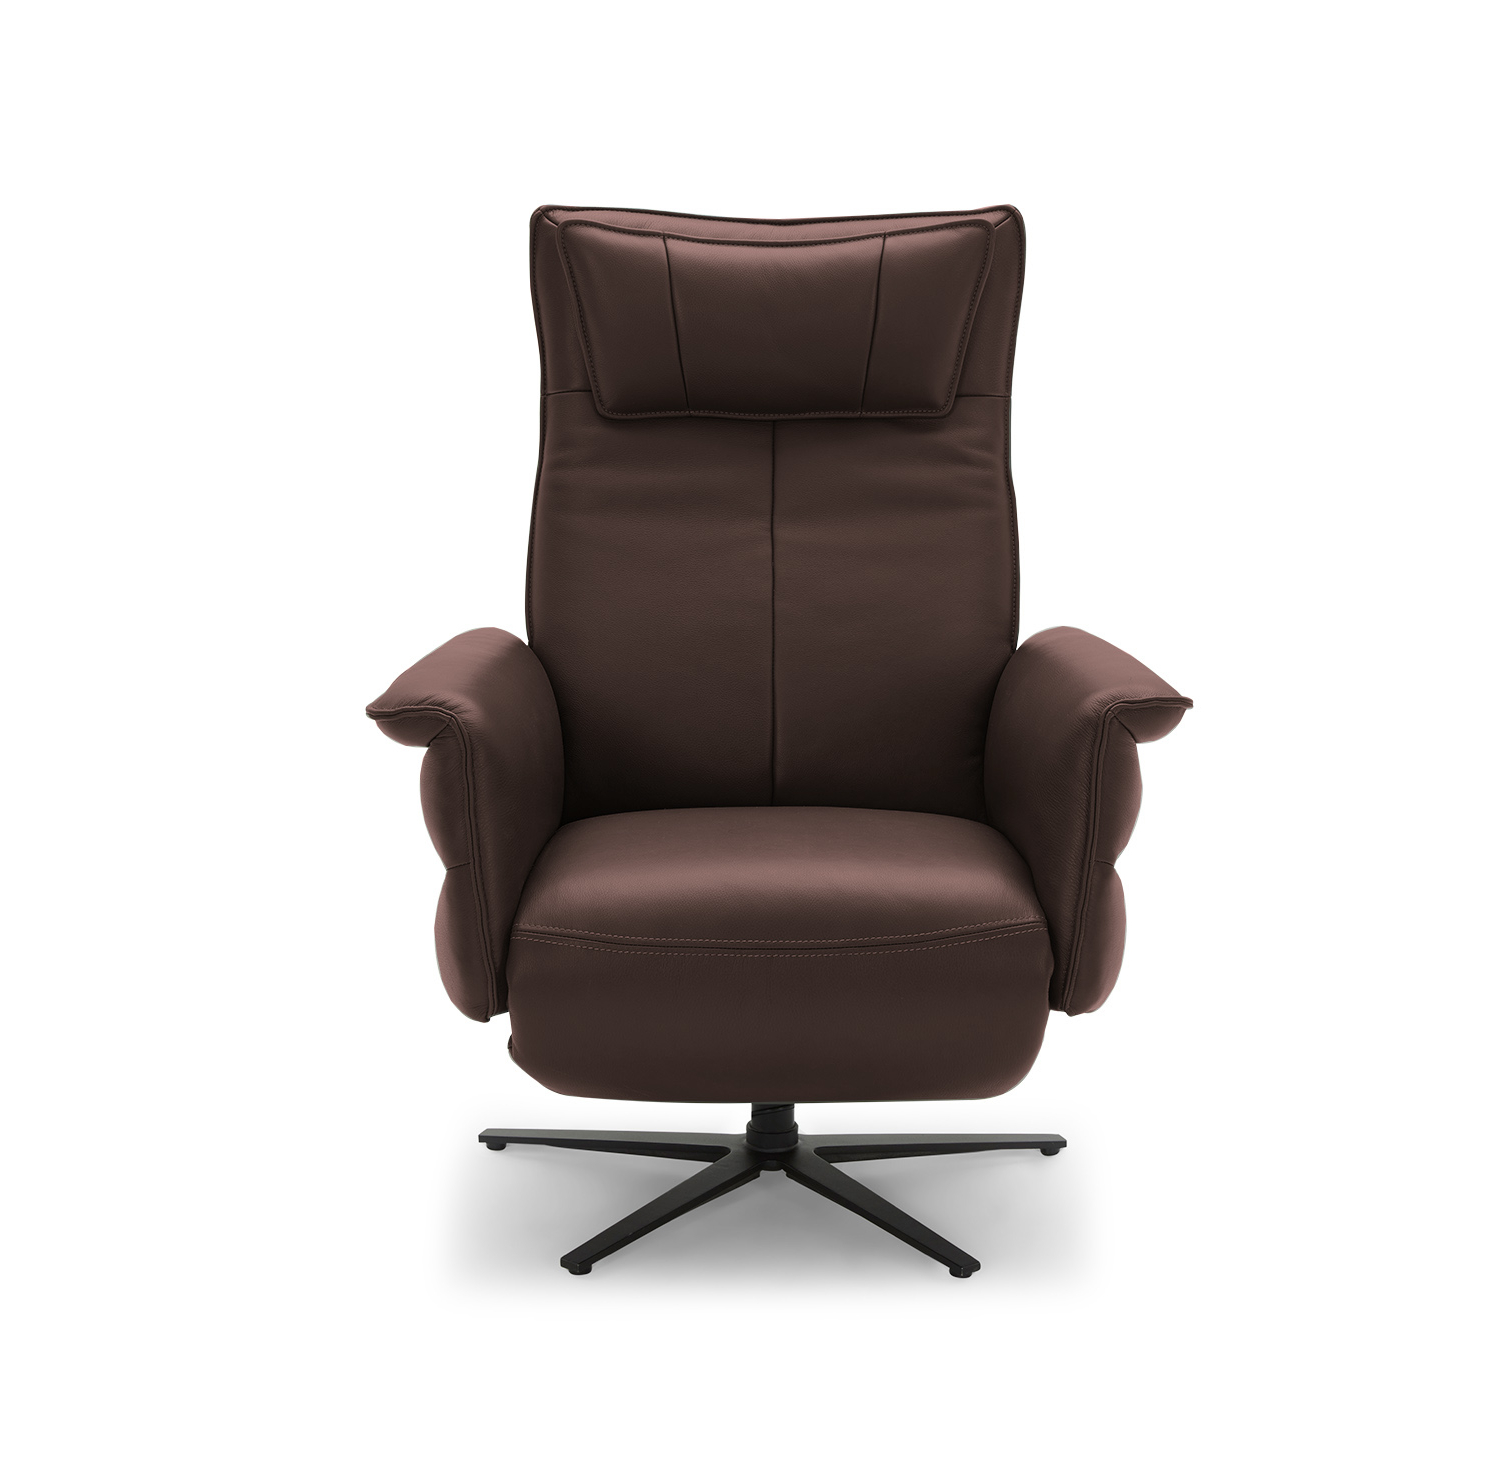 Marsalla Recliner Chair